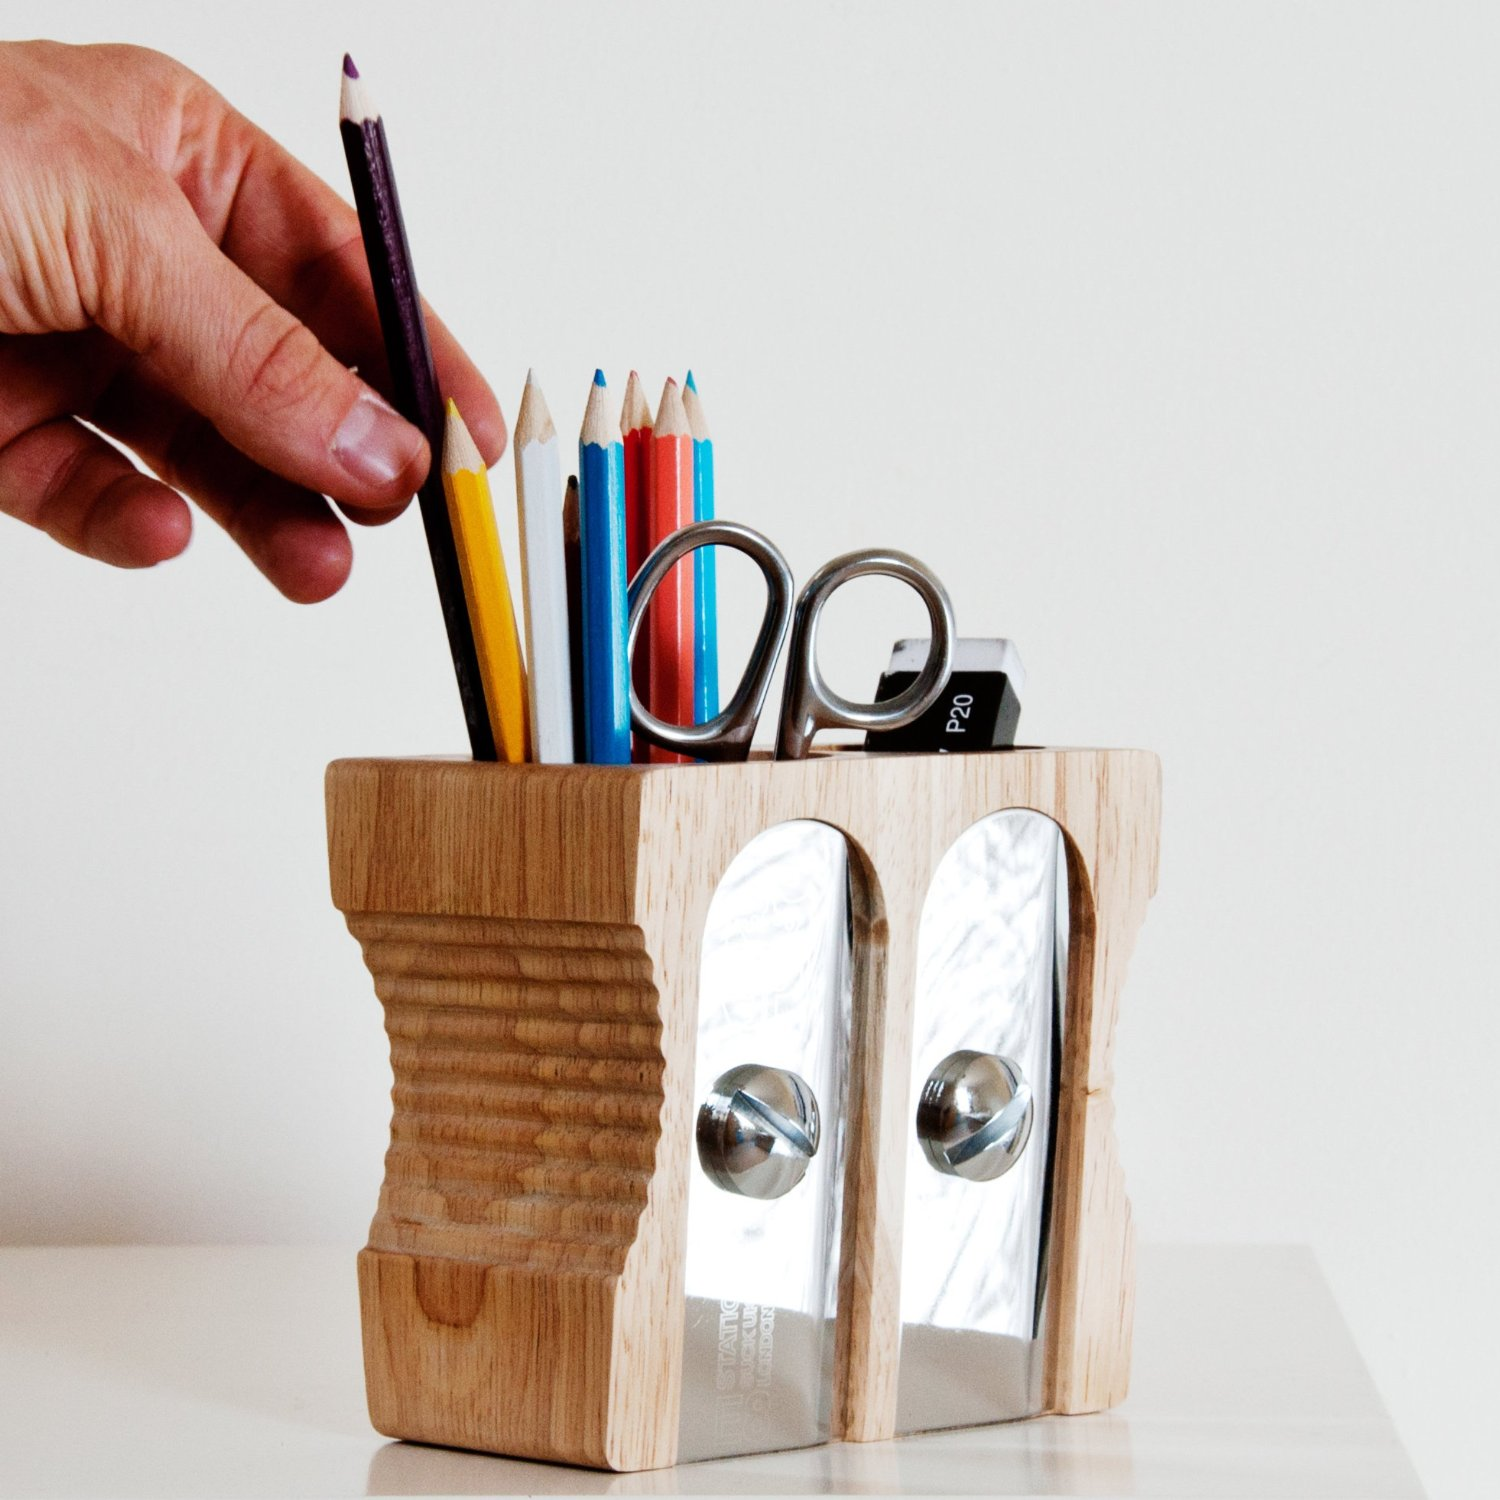 Top 10 gifts for office co workers cool gifting Cool pencil holder ideas